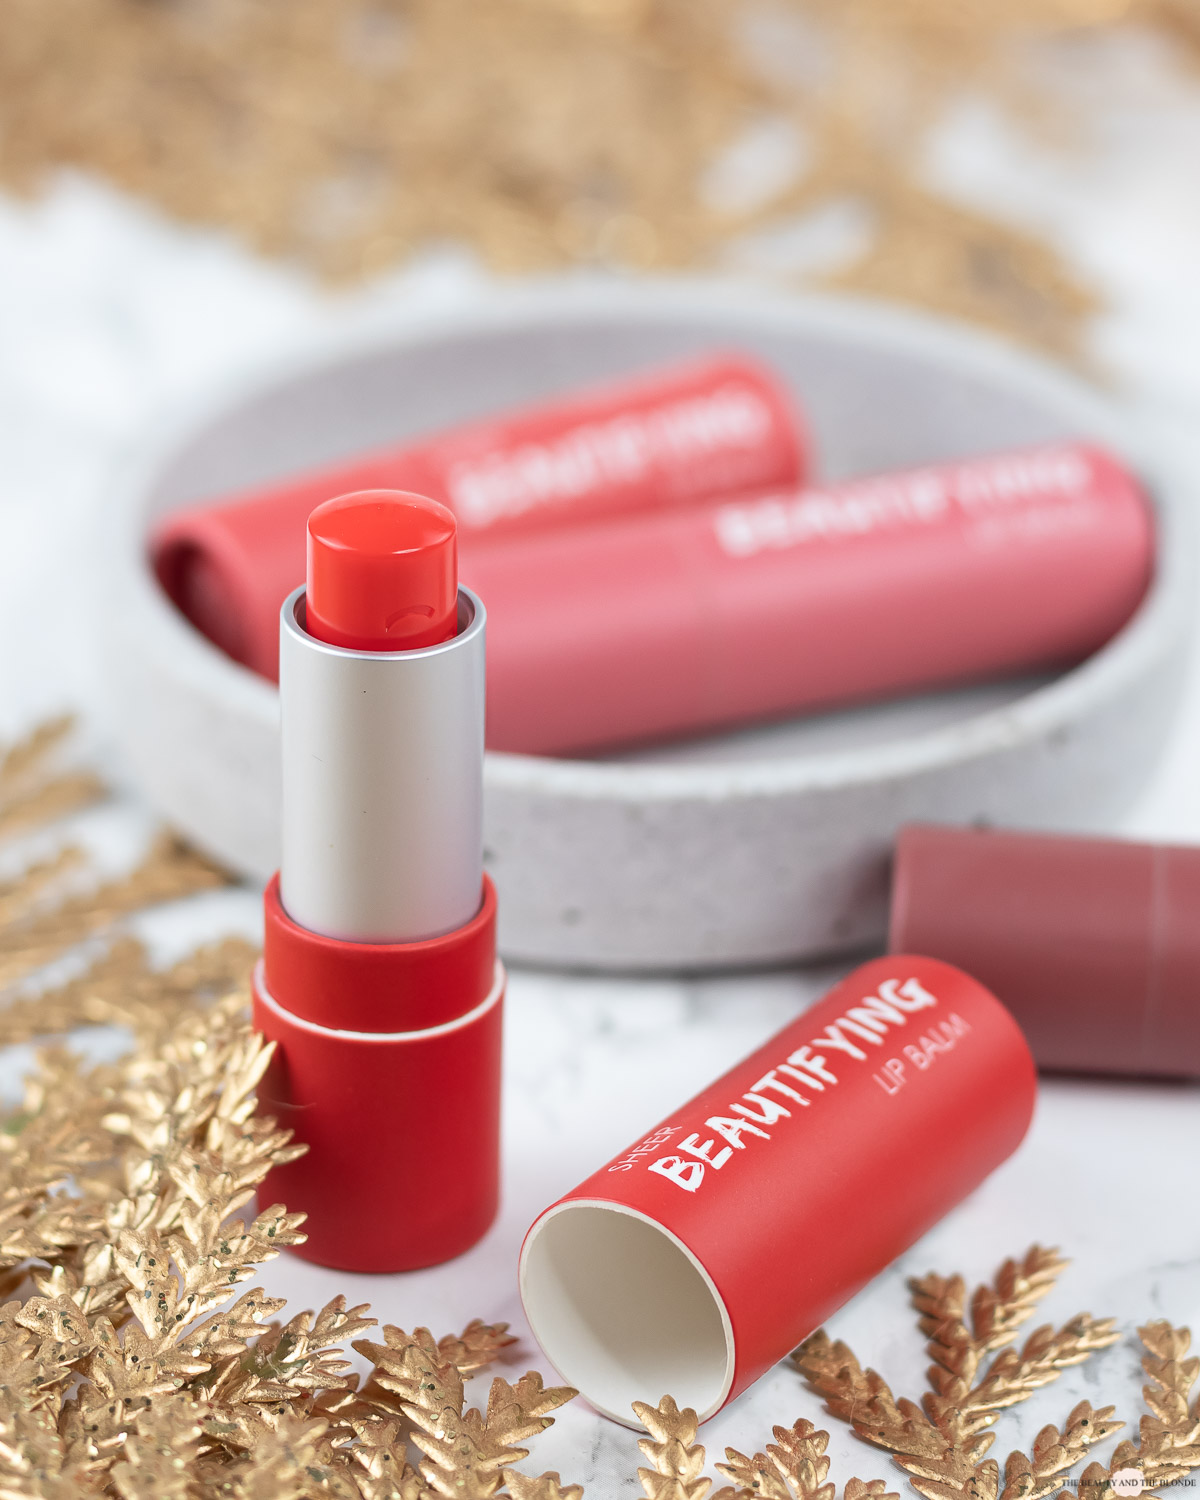 Catrice Beautifying Lip Balm Review